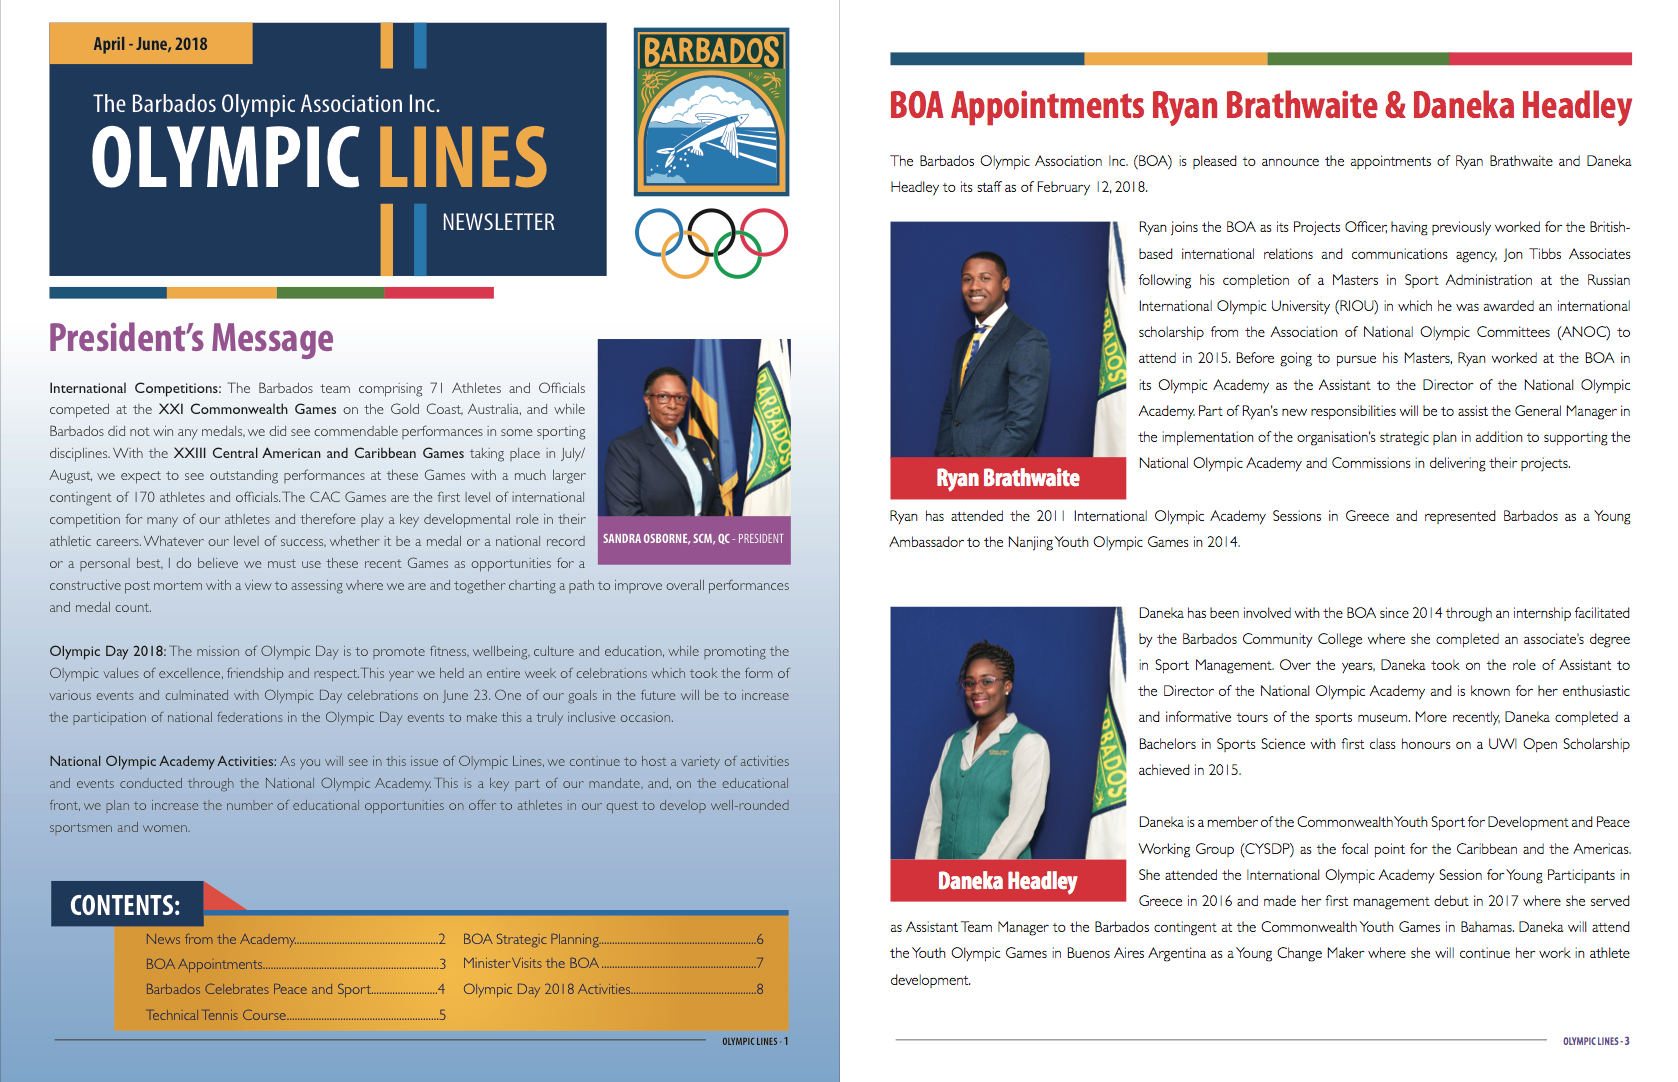 Olympic Lines: April-June, 2017 - Preview